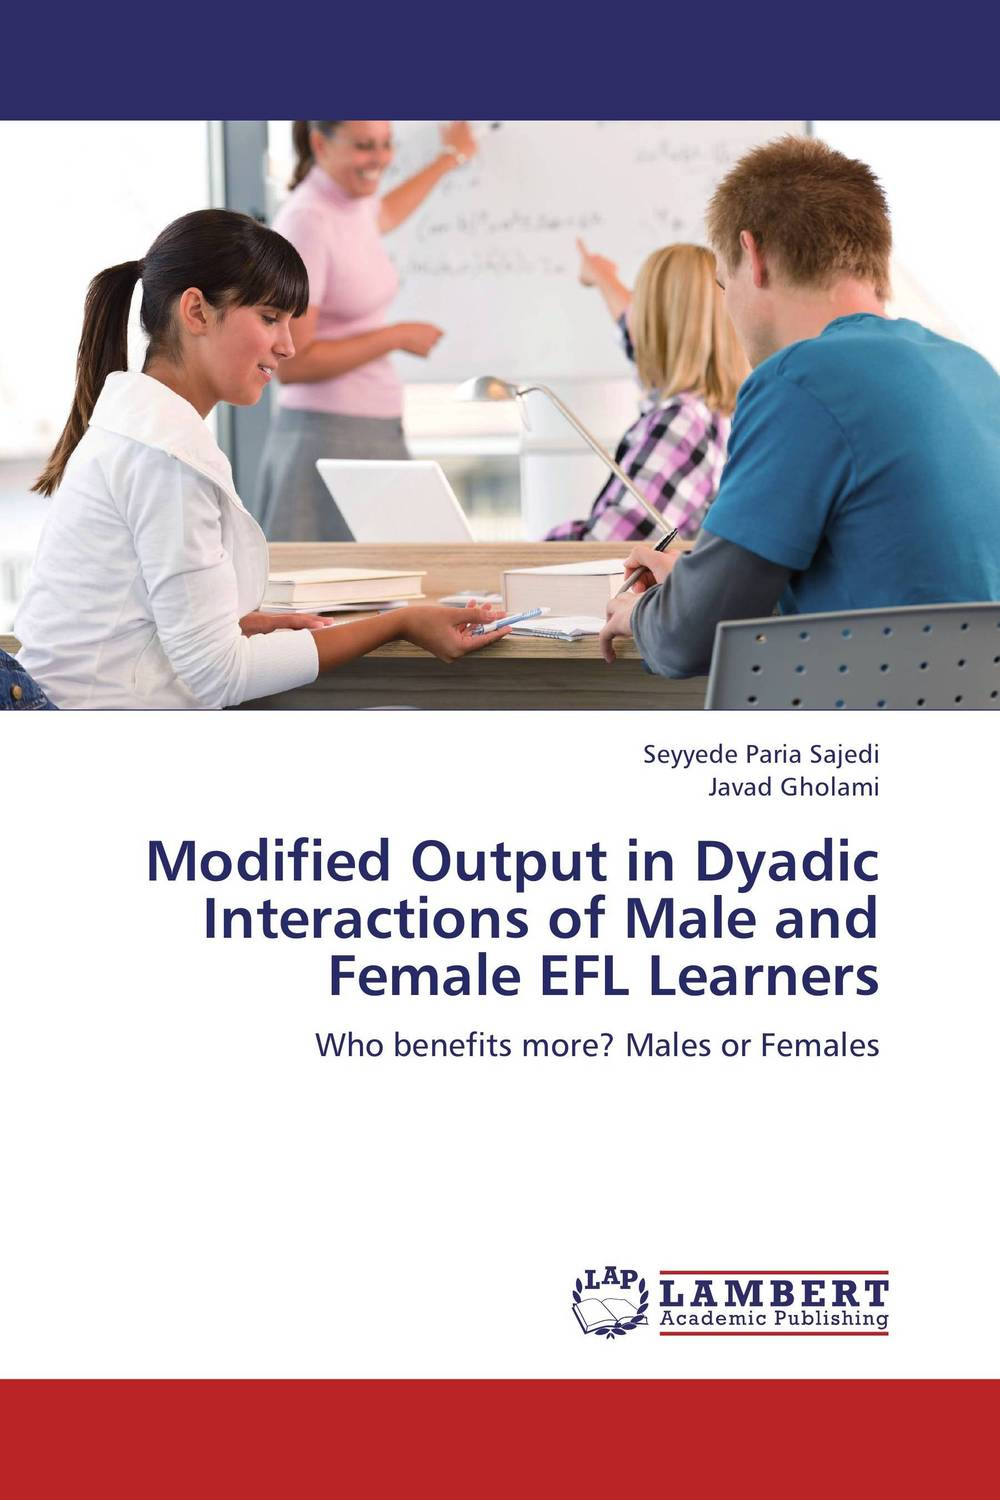 Modified Output in Dyadic Interactions of Male and Female EFL Learners roshanak nouralian learning based readiness and speaking ability of efl learners